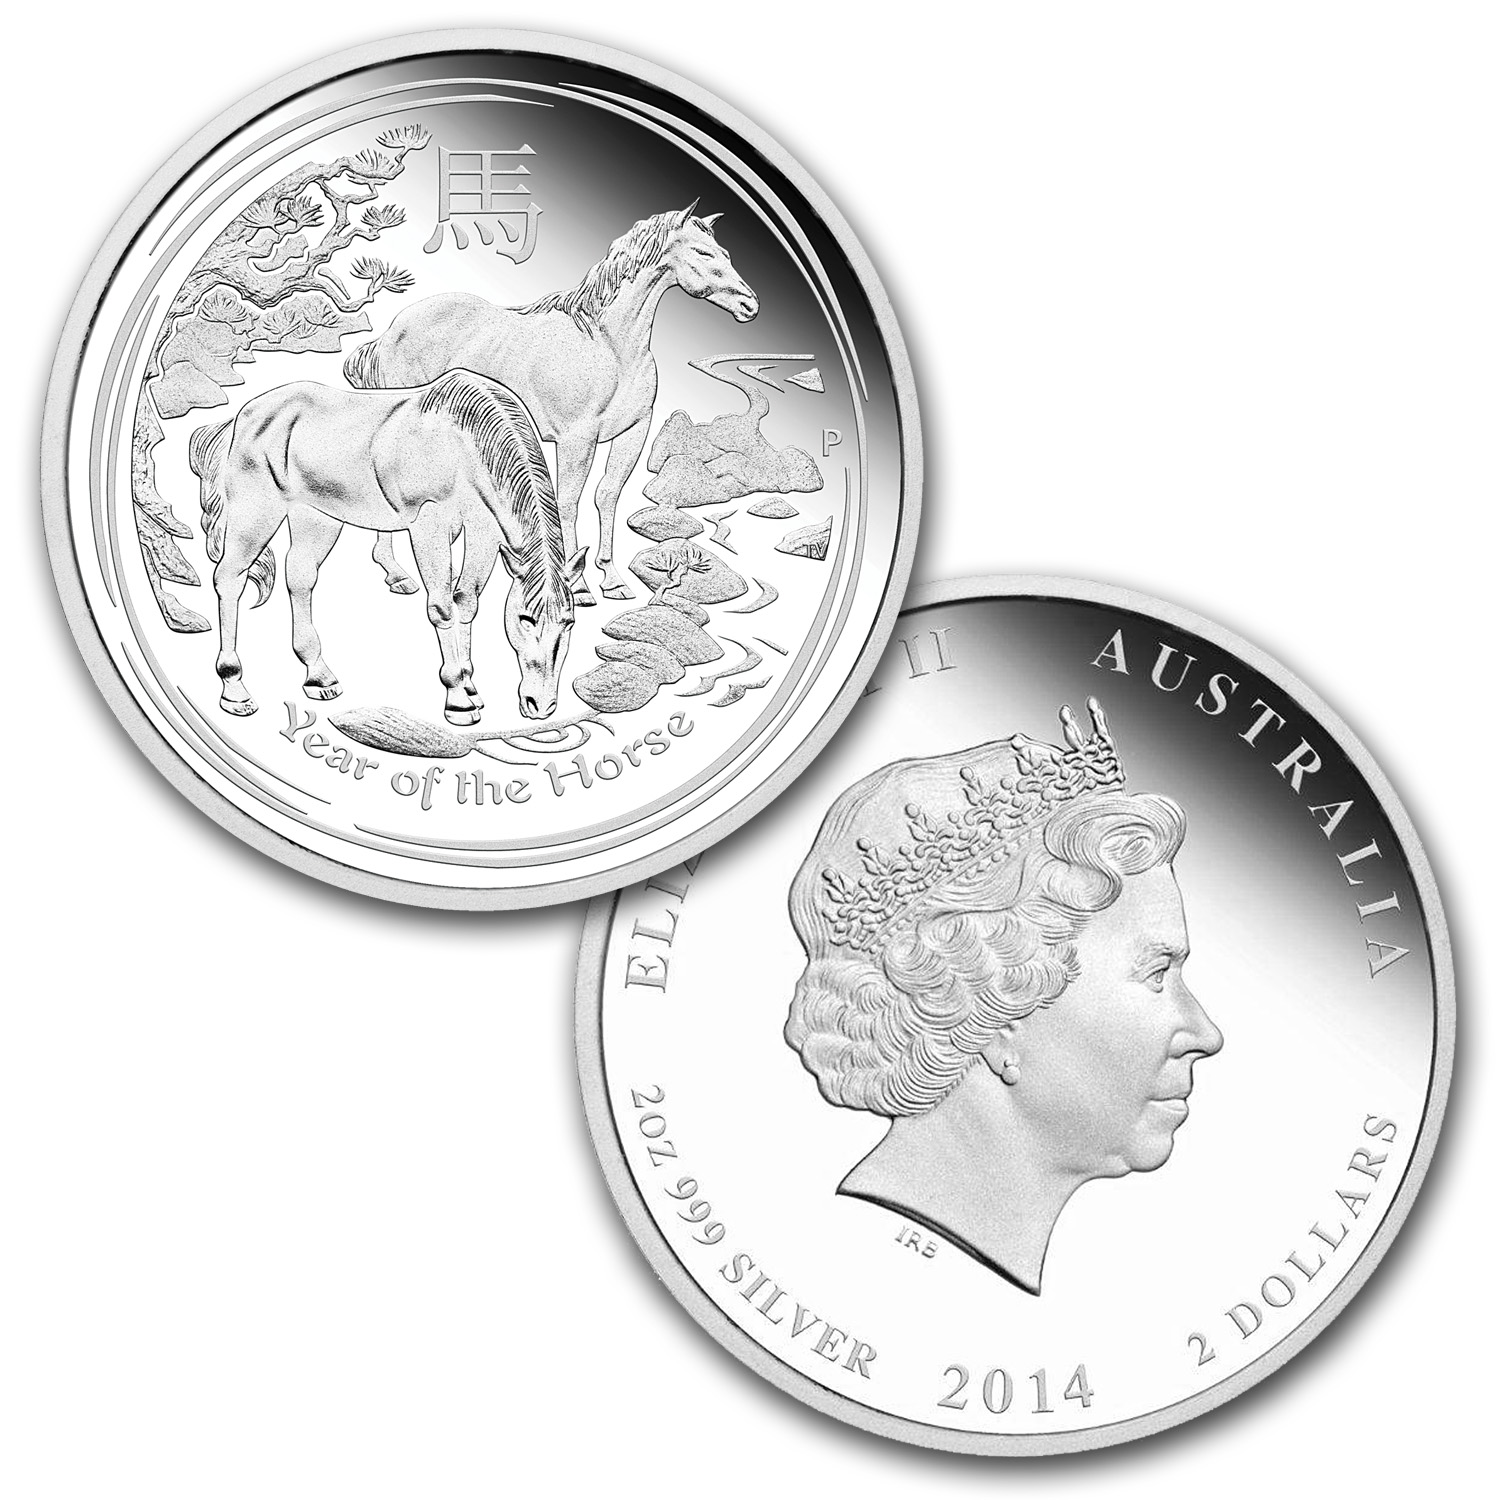 2014 Year of the Horse - Silver 3-Coin Proof Set - (Series II)